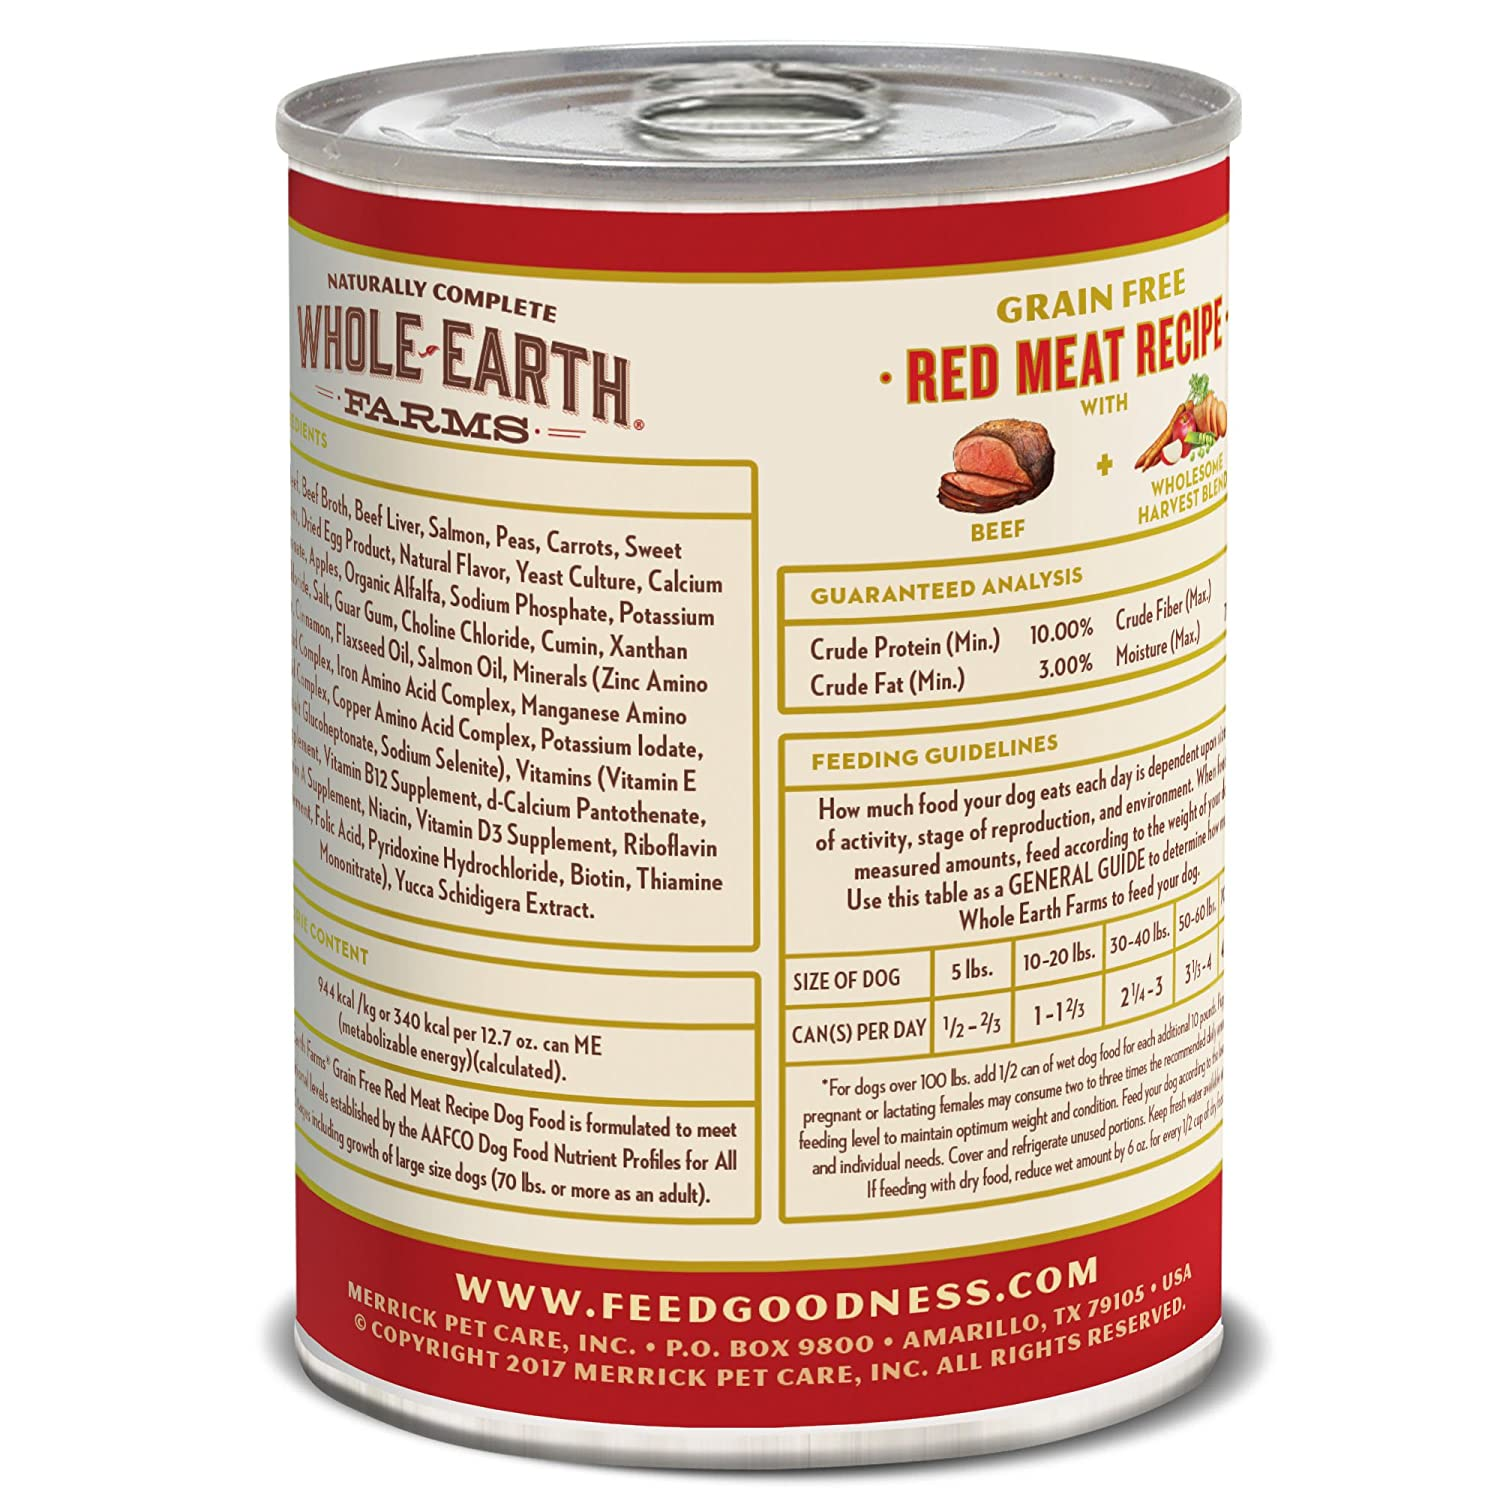 Whole Earth Farms Grain Free Canned Dog Food, 12.7 oz, 12 count